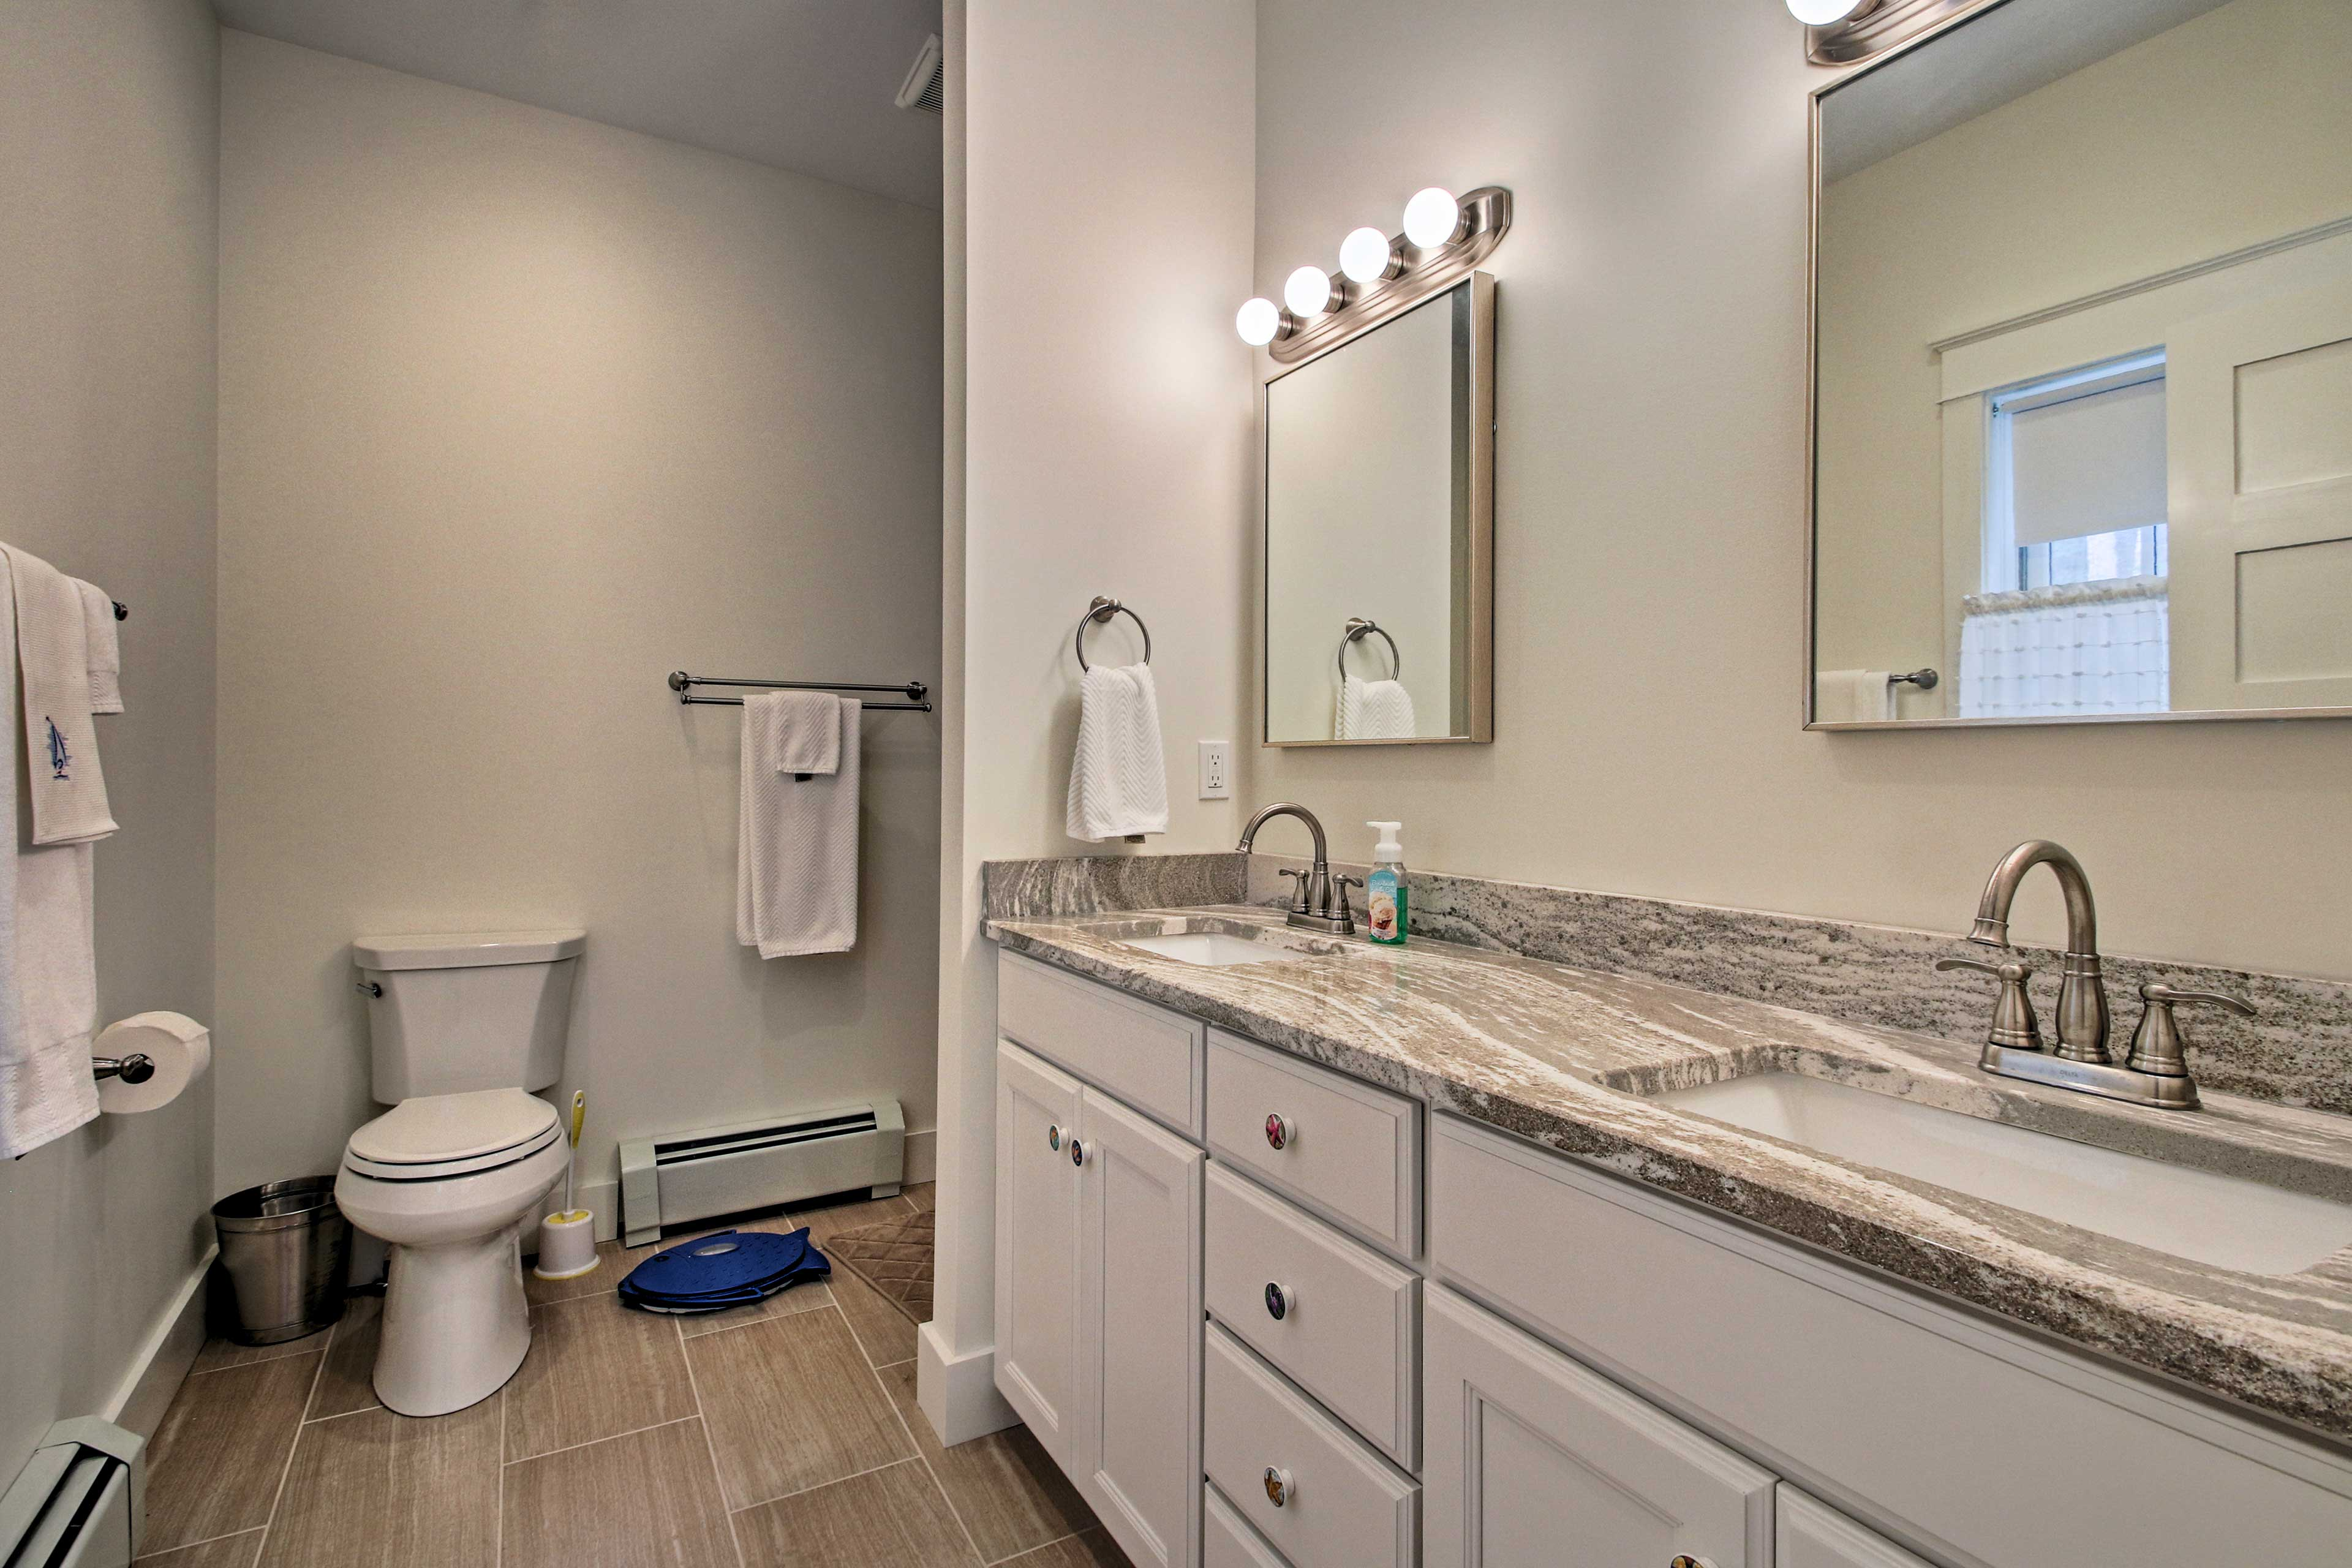 Get ready each morning at the lengthy double vanity!